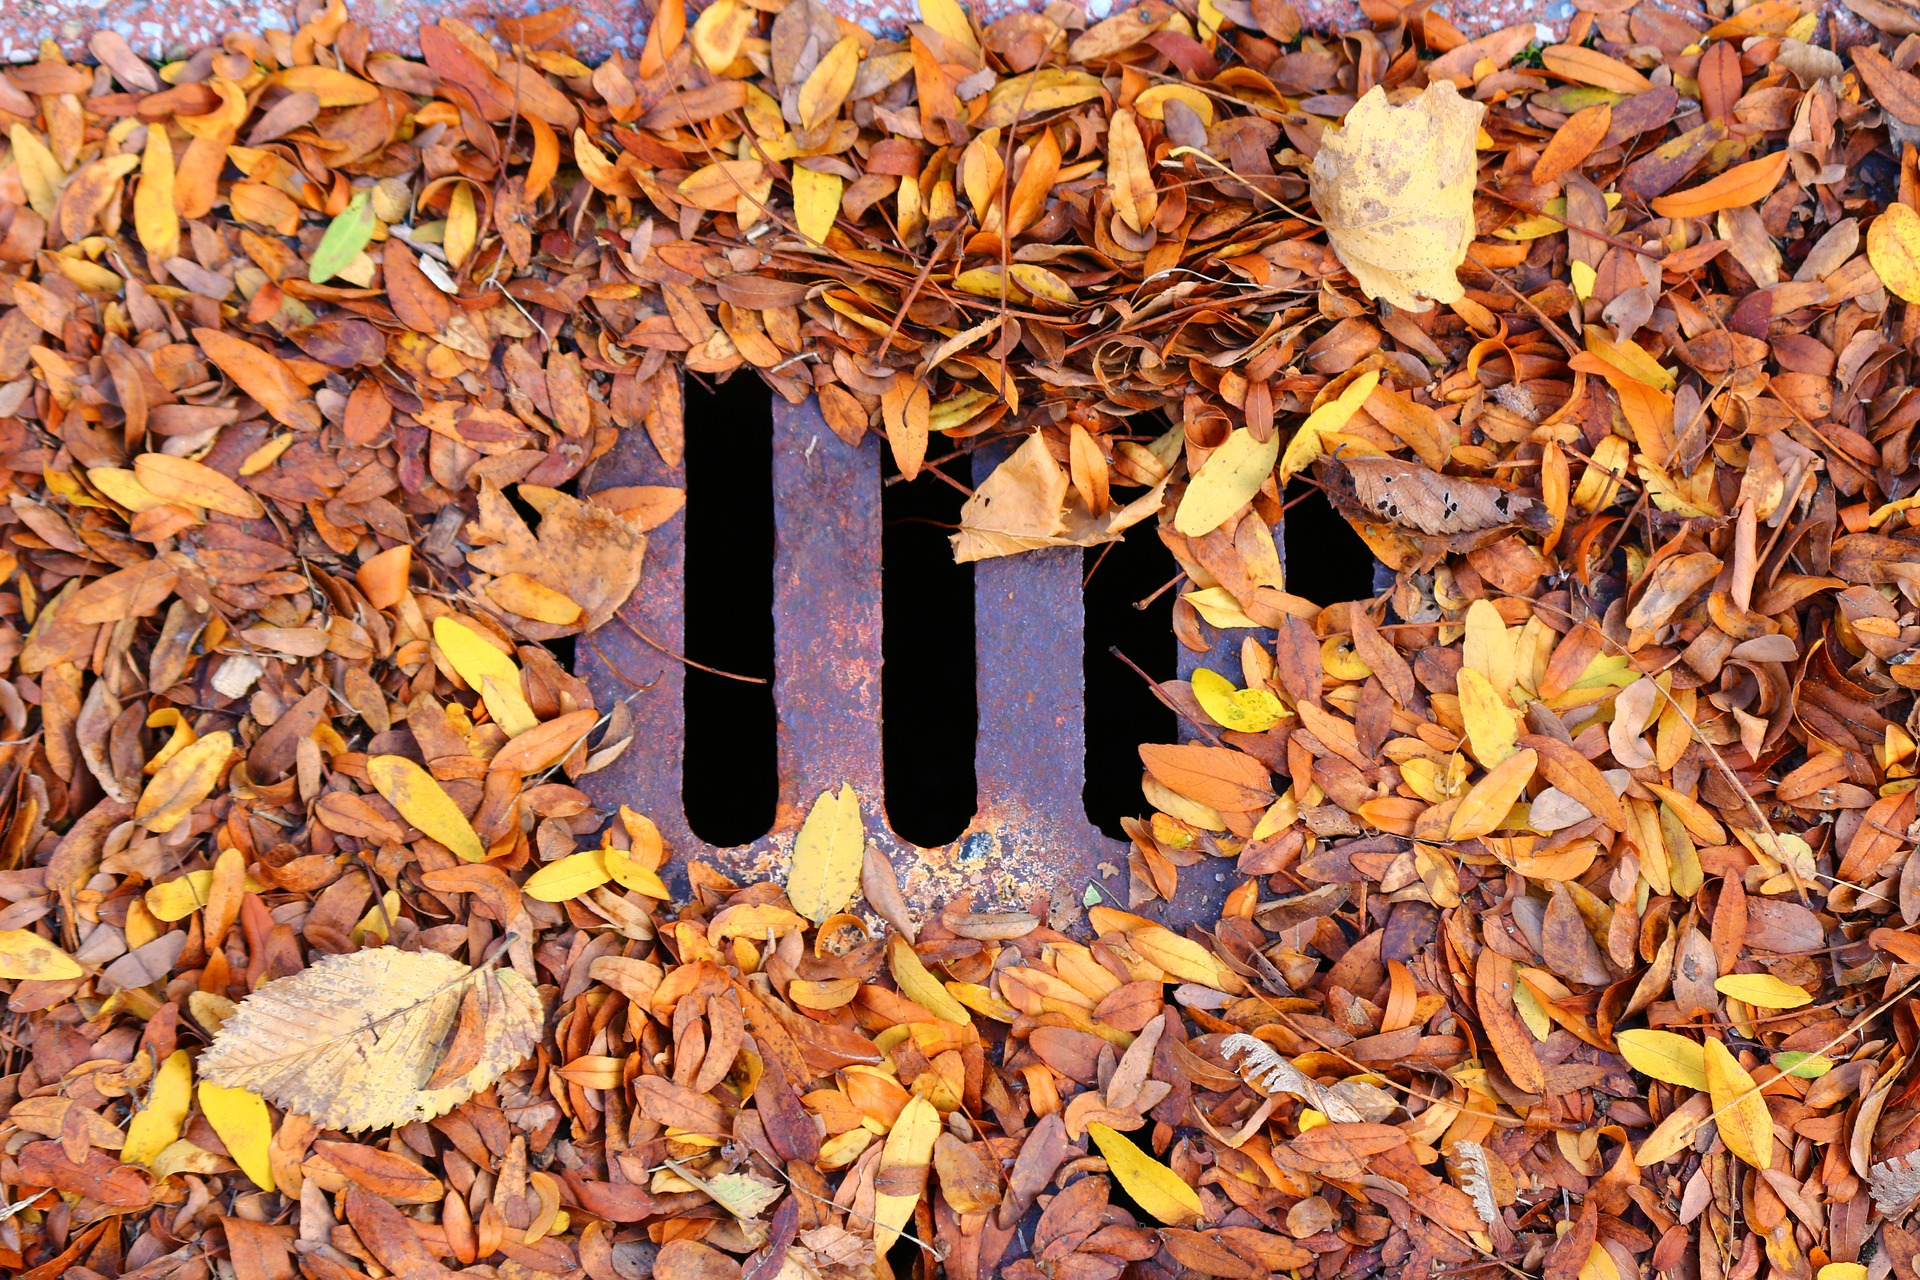 a drain covered in leaves that needs unblocking before winter